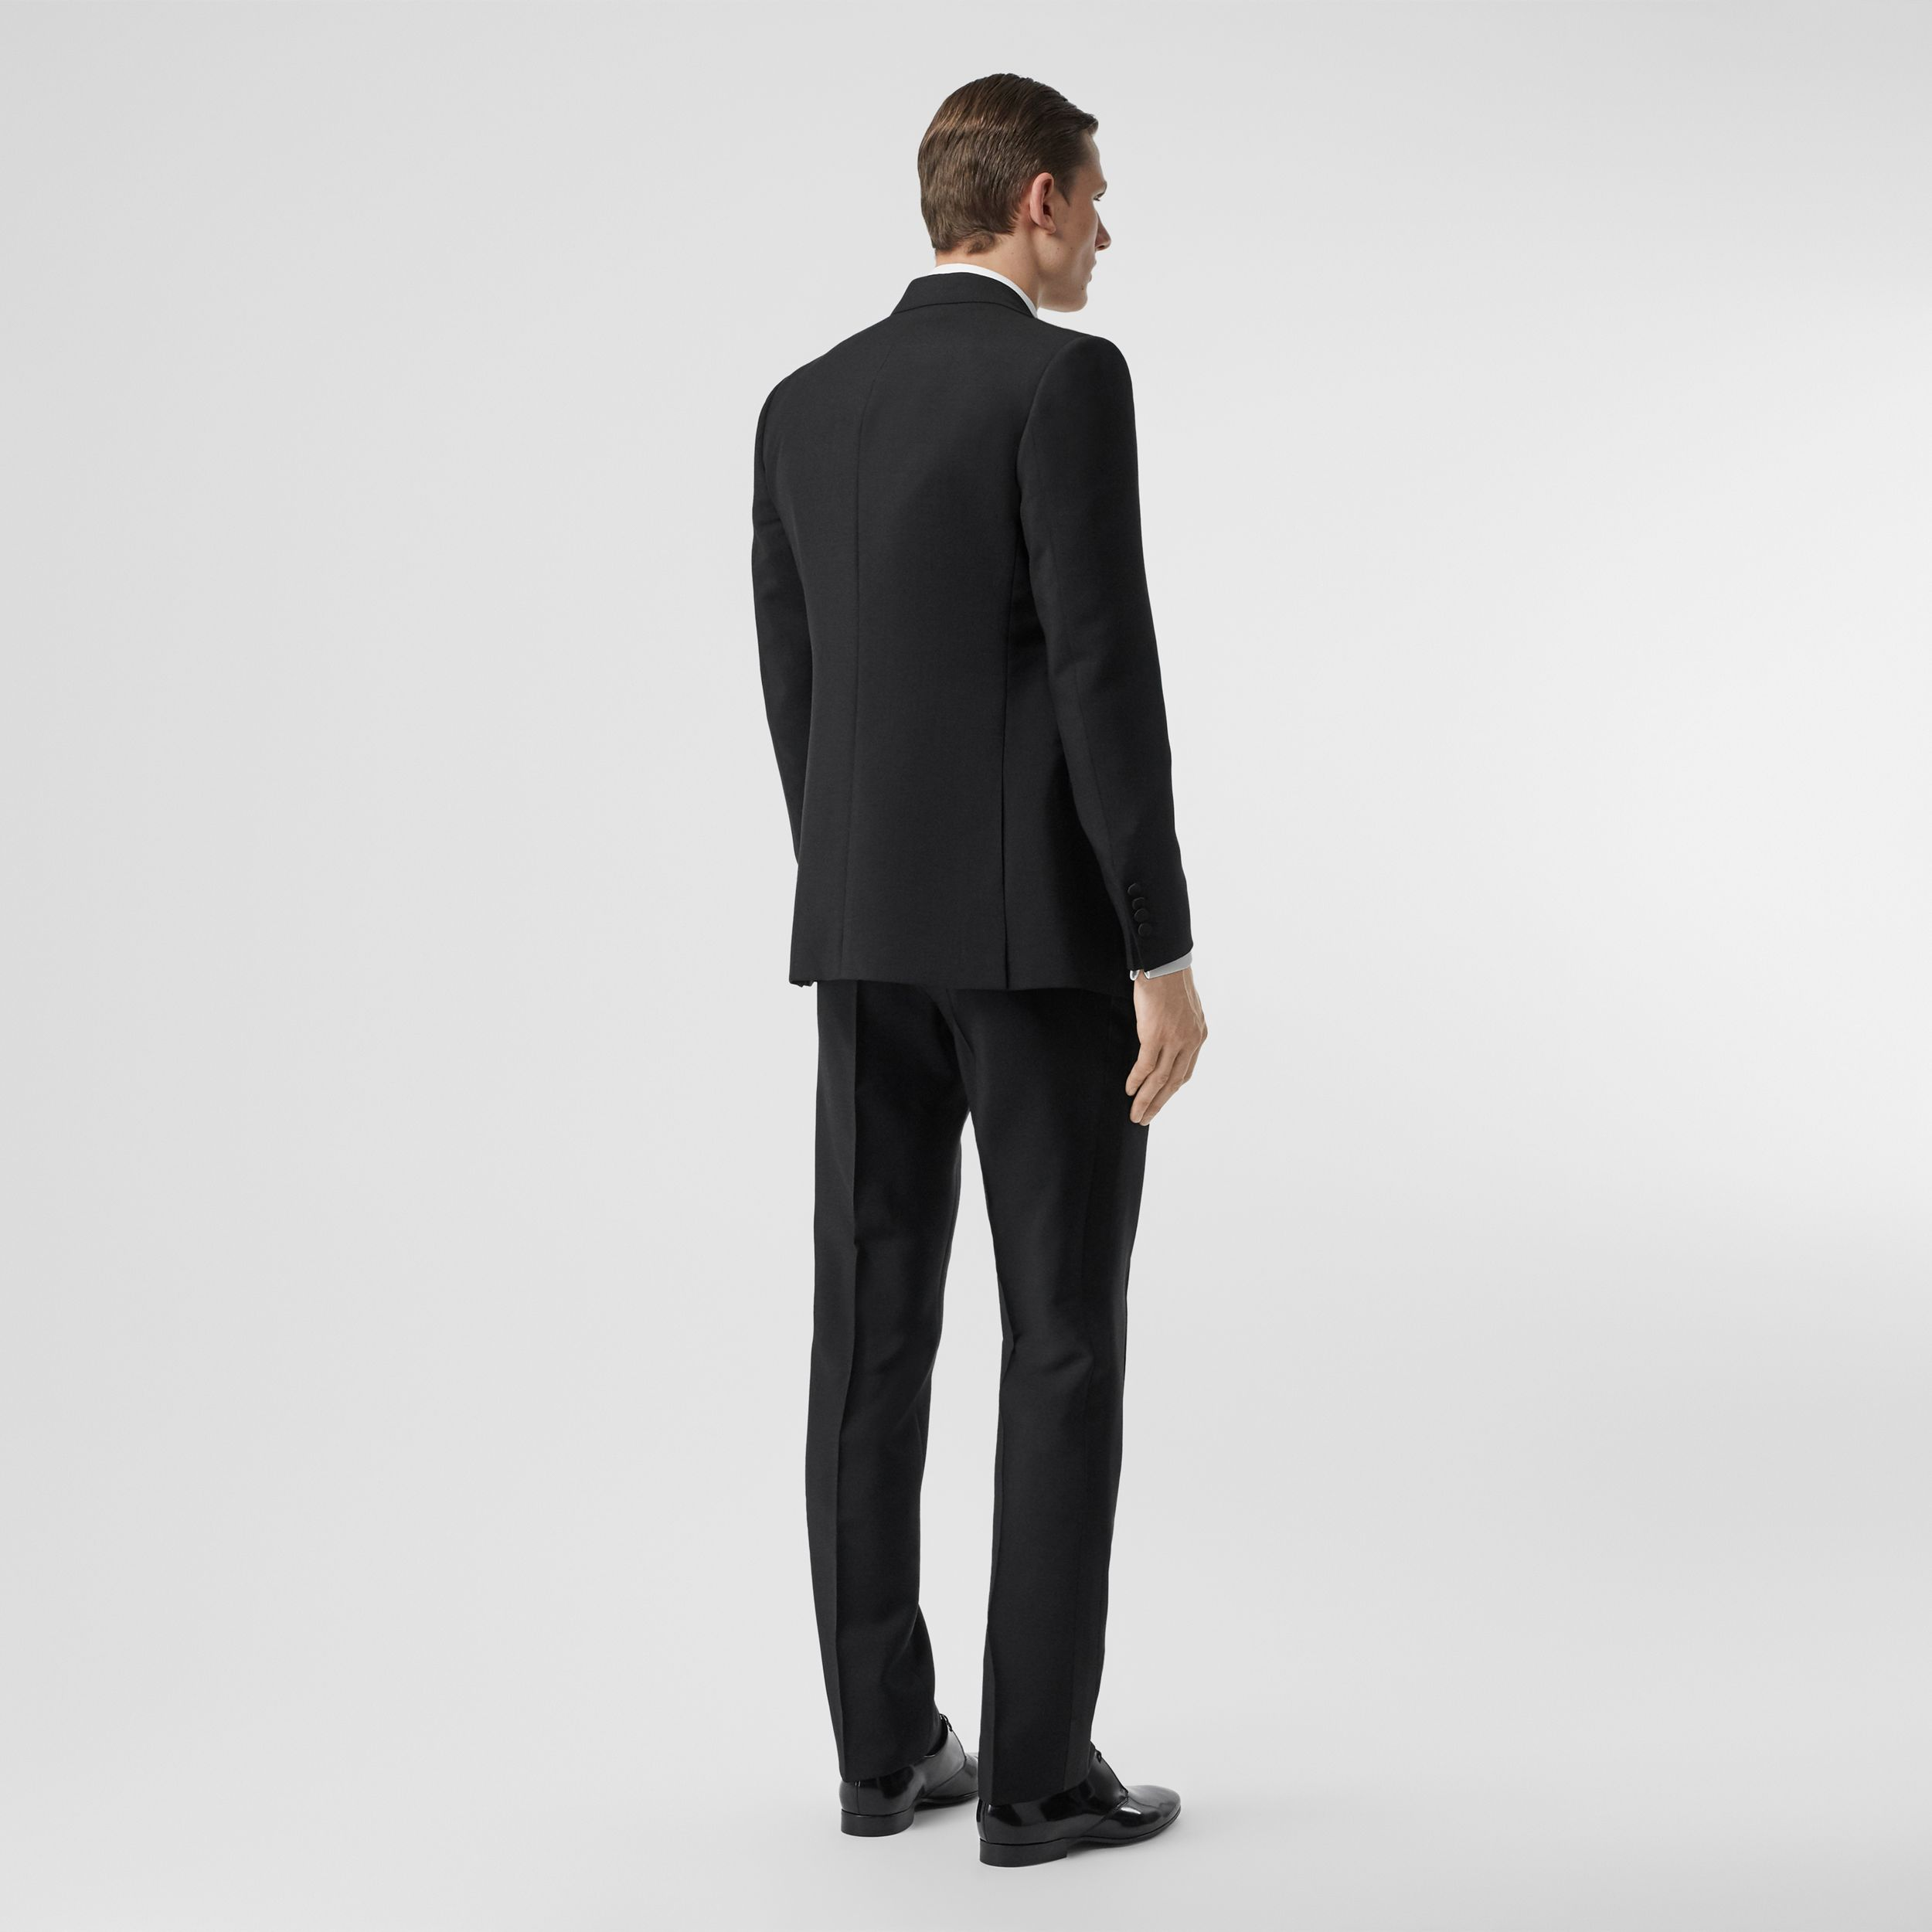 English Fit Mohair Wool Tuxedo in Black - Men | Burberry - 3